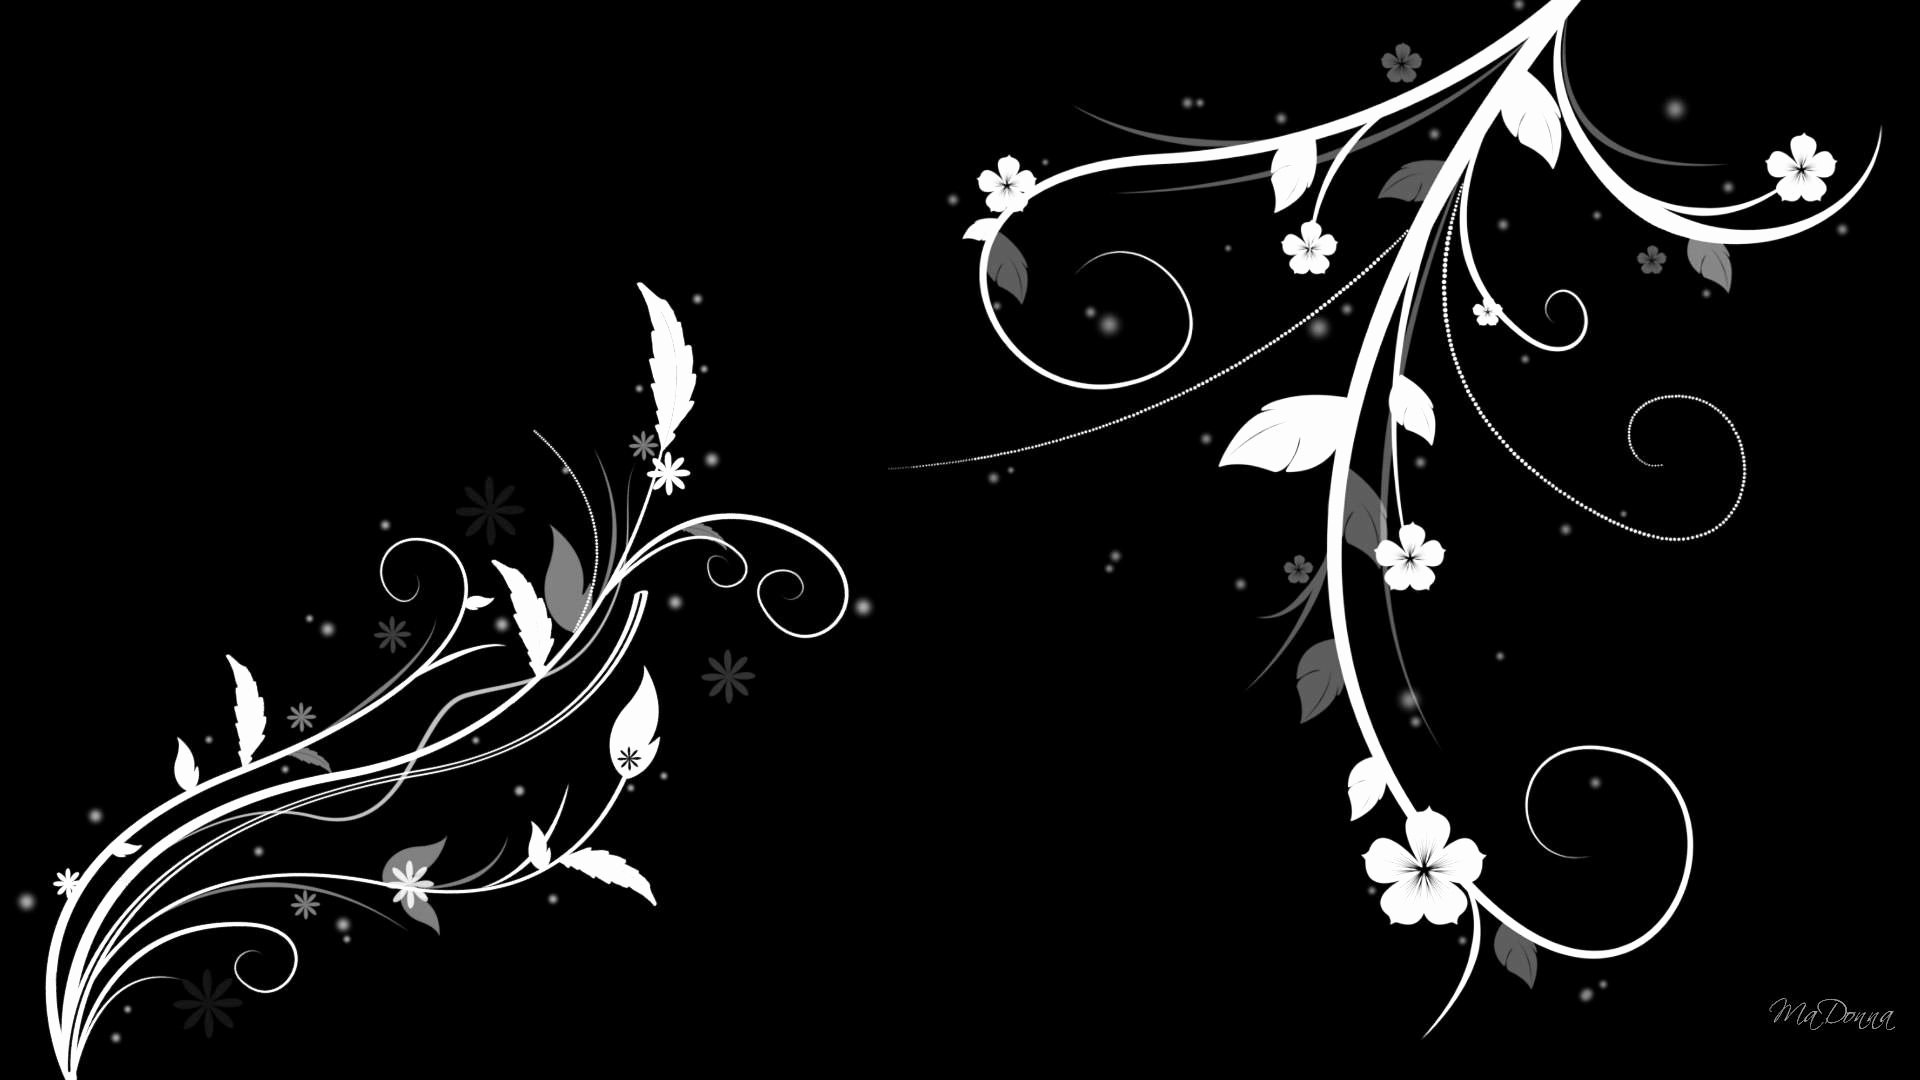 Black and White Abstract Pictures Awesome Black & White Floral Wallpapers